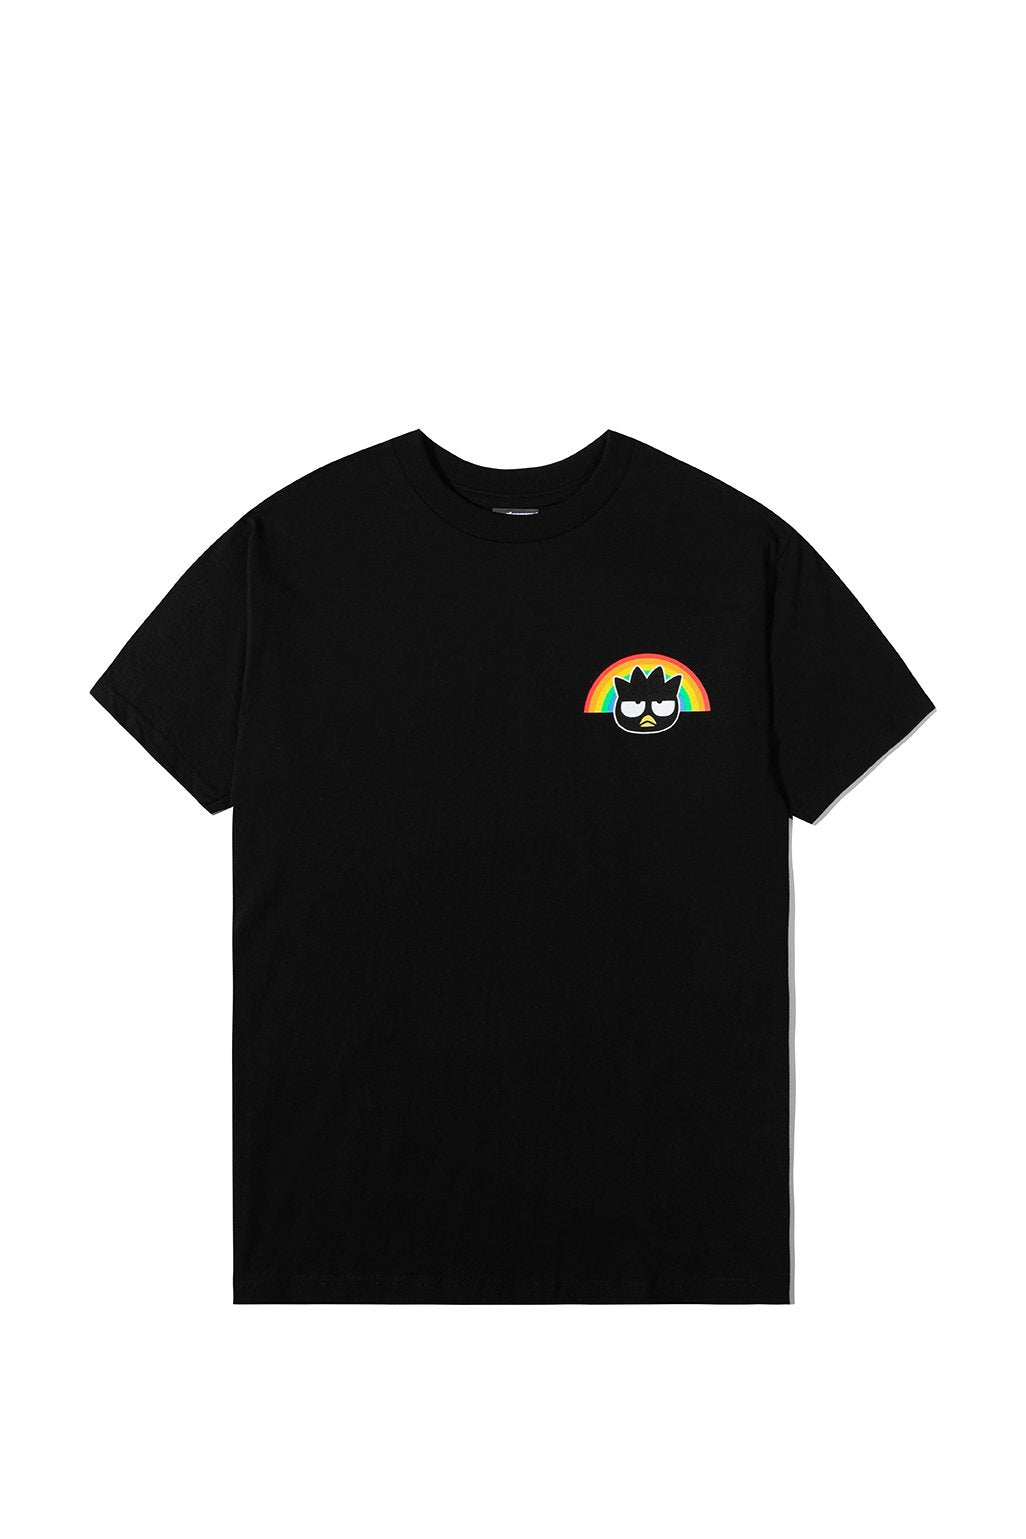 The Hundreds x Sanrio Badtz-Maru T-Shirt in Black xld